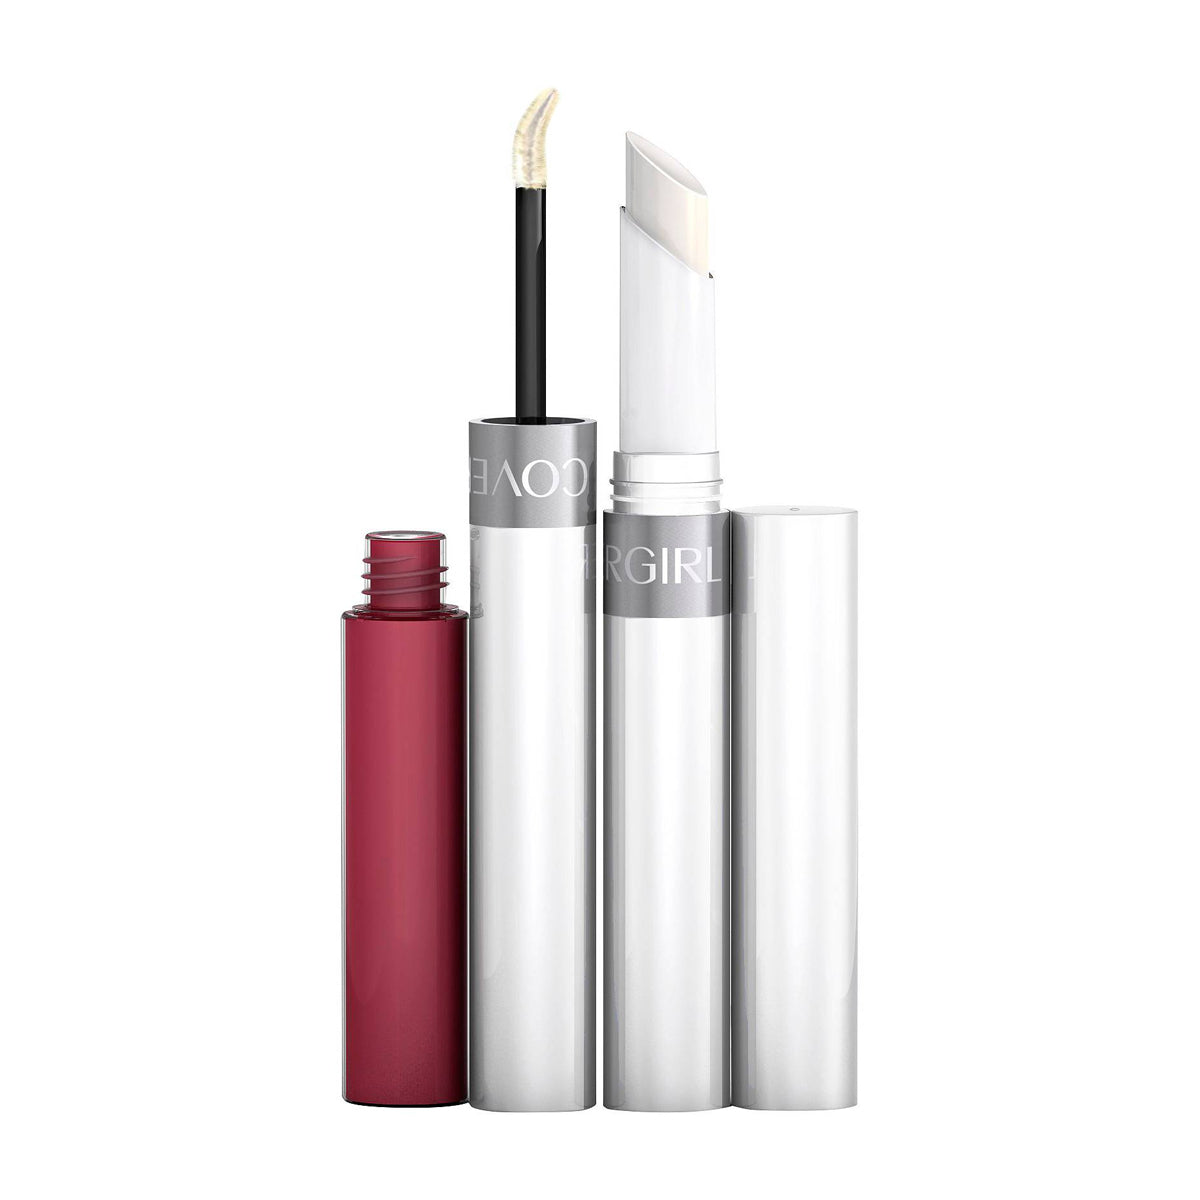 COVERGIRL Outlast All-Day Lip Color | HODIVA SHOP